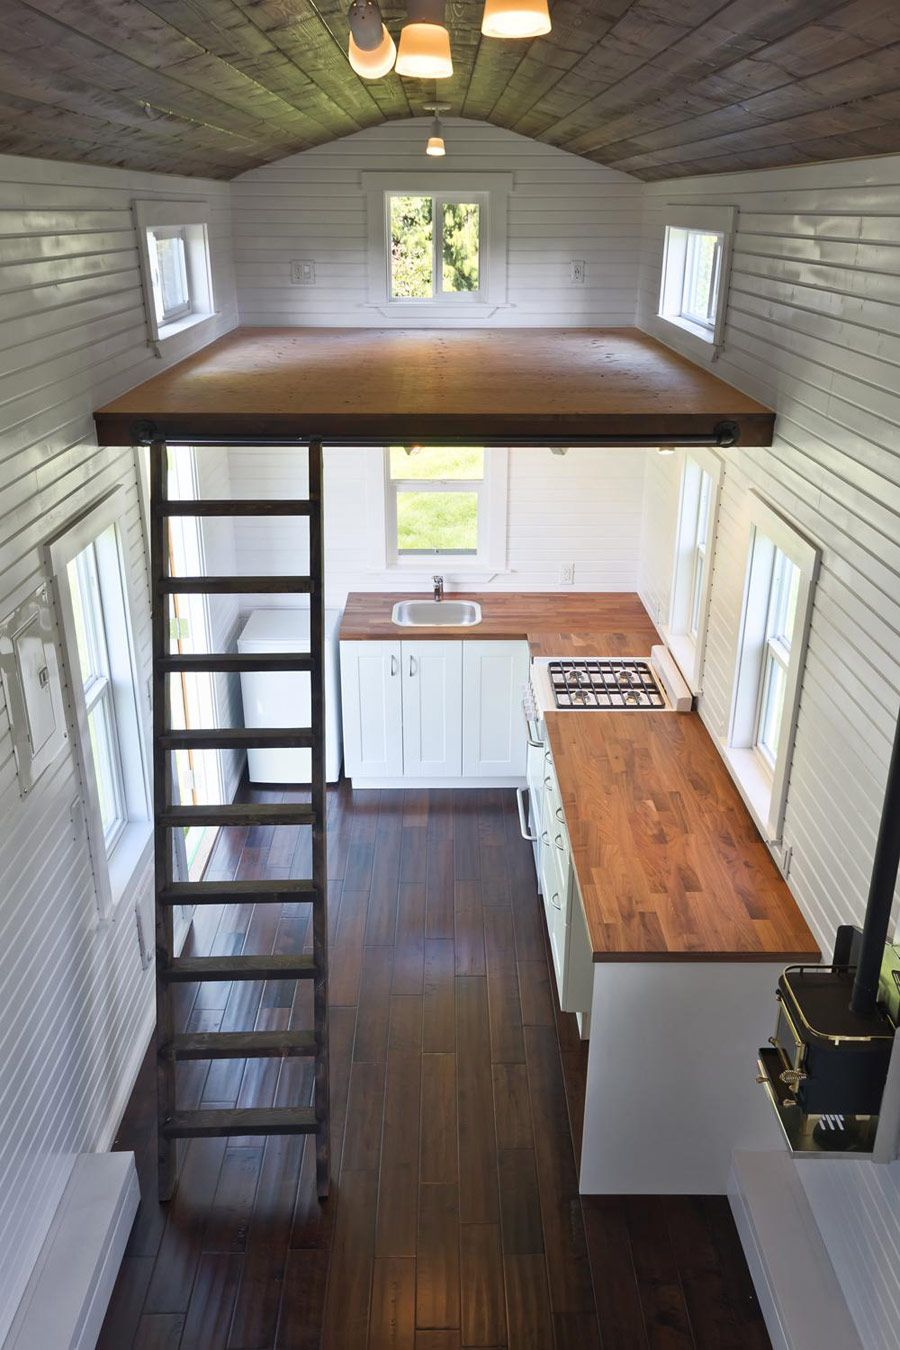 a 224 square feet tiny house on wheels in delta british columbia a 224 square feet tiny house on wheels in delta british columbia canada